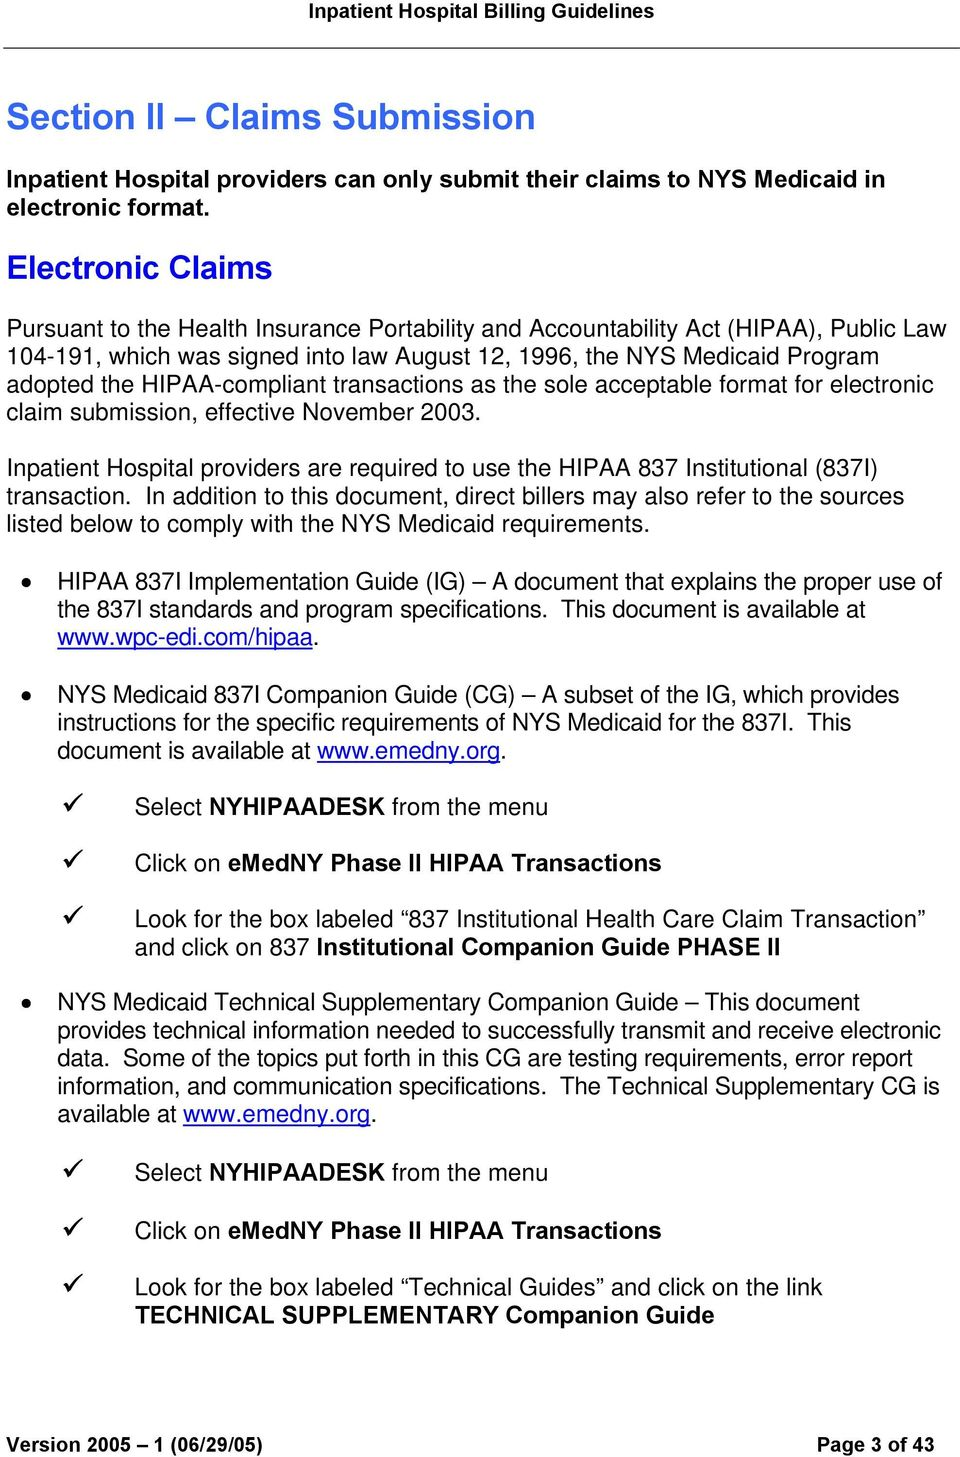 HIPAA-compliant transactions as the sole acceptable format for electronic claim submission, effective November 2003.